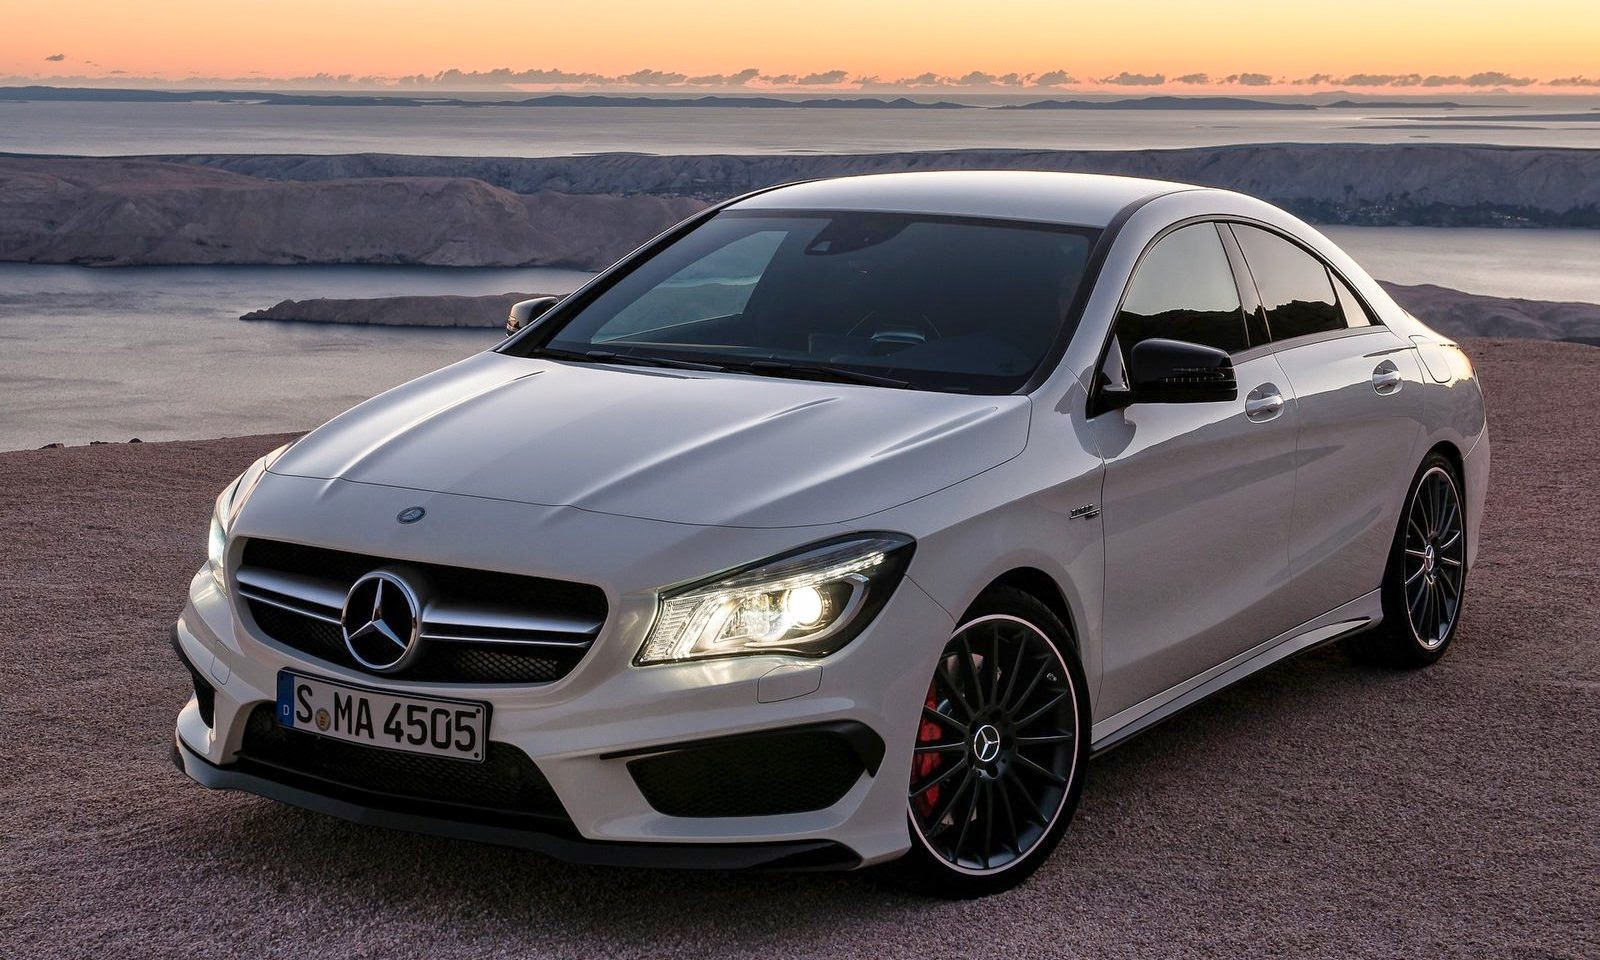 Bmotorweb papel de parede mercedes benz cla 45 amg 2014 for 2014 mercedes benz cla 45